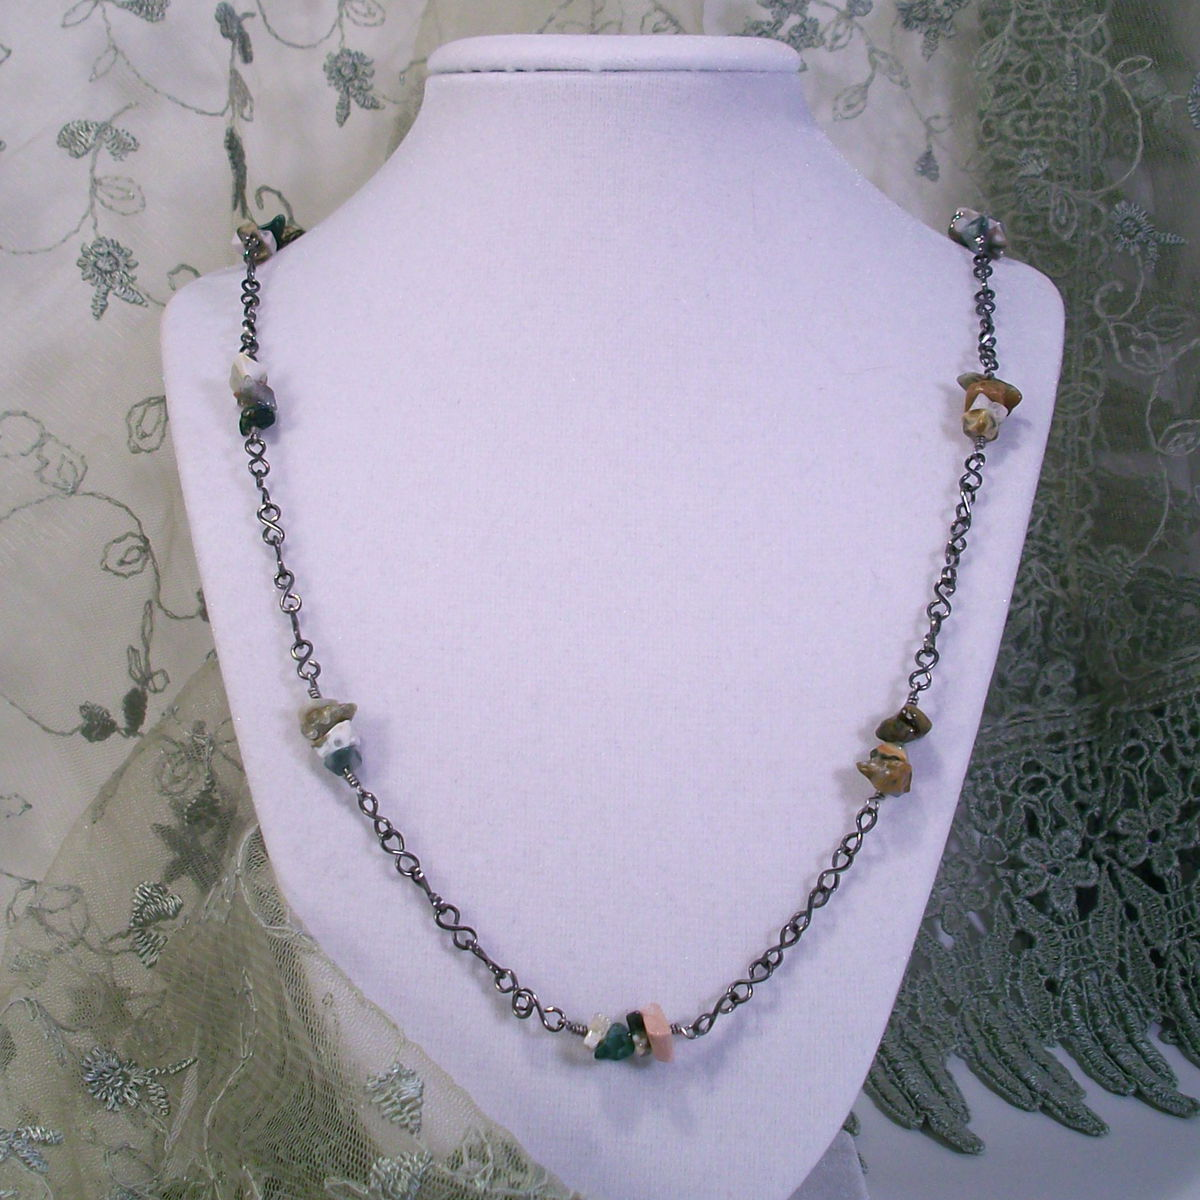 Ocean Jasper Necklace with Handmade Niobium Chain - product image